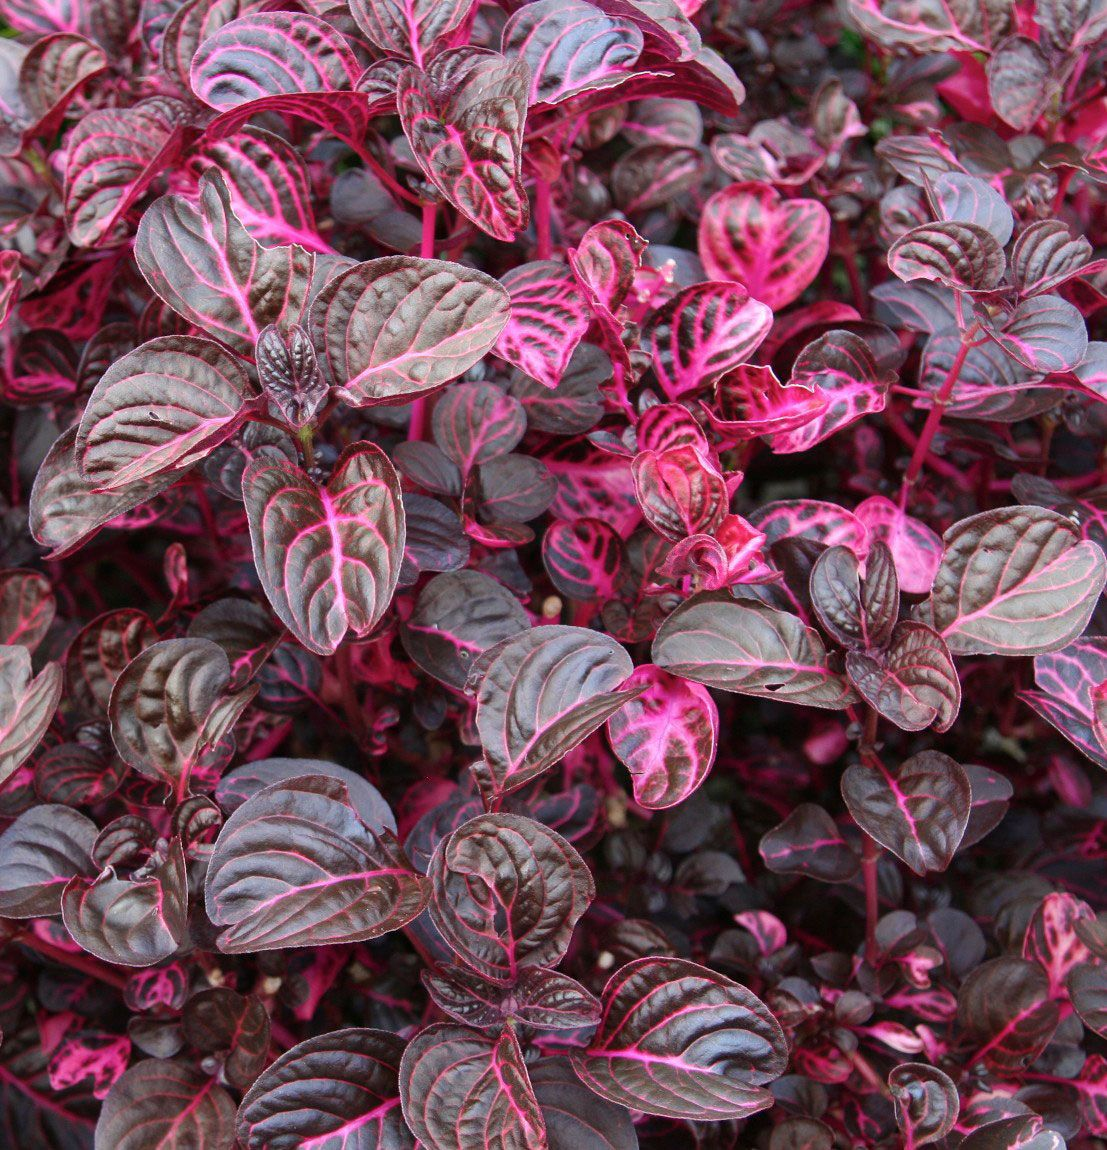 Blood Leaf Plant Iresine Herbstii There Are Many Cultivars Of This Mounding Or